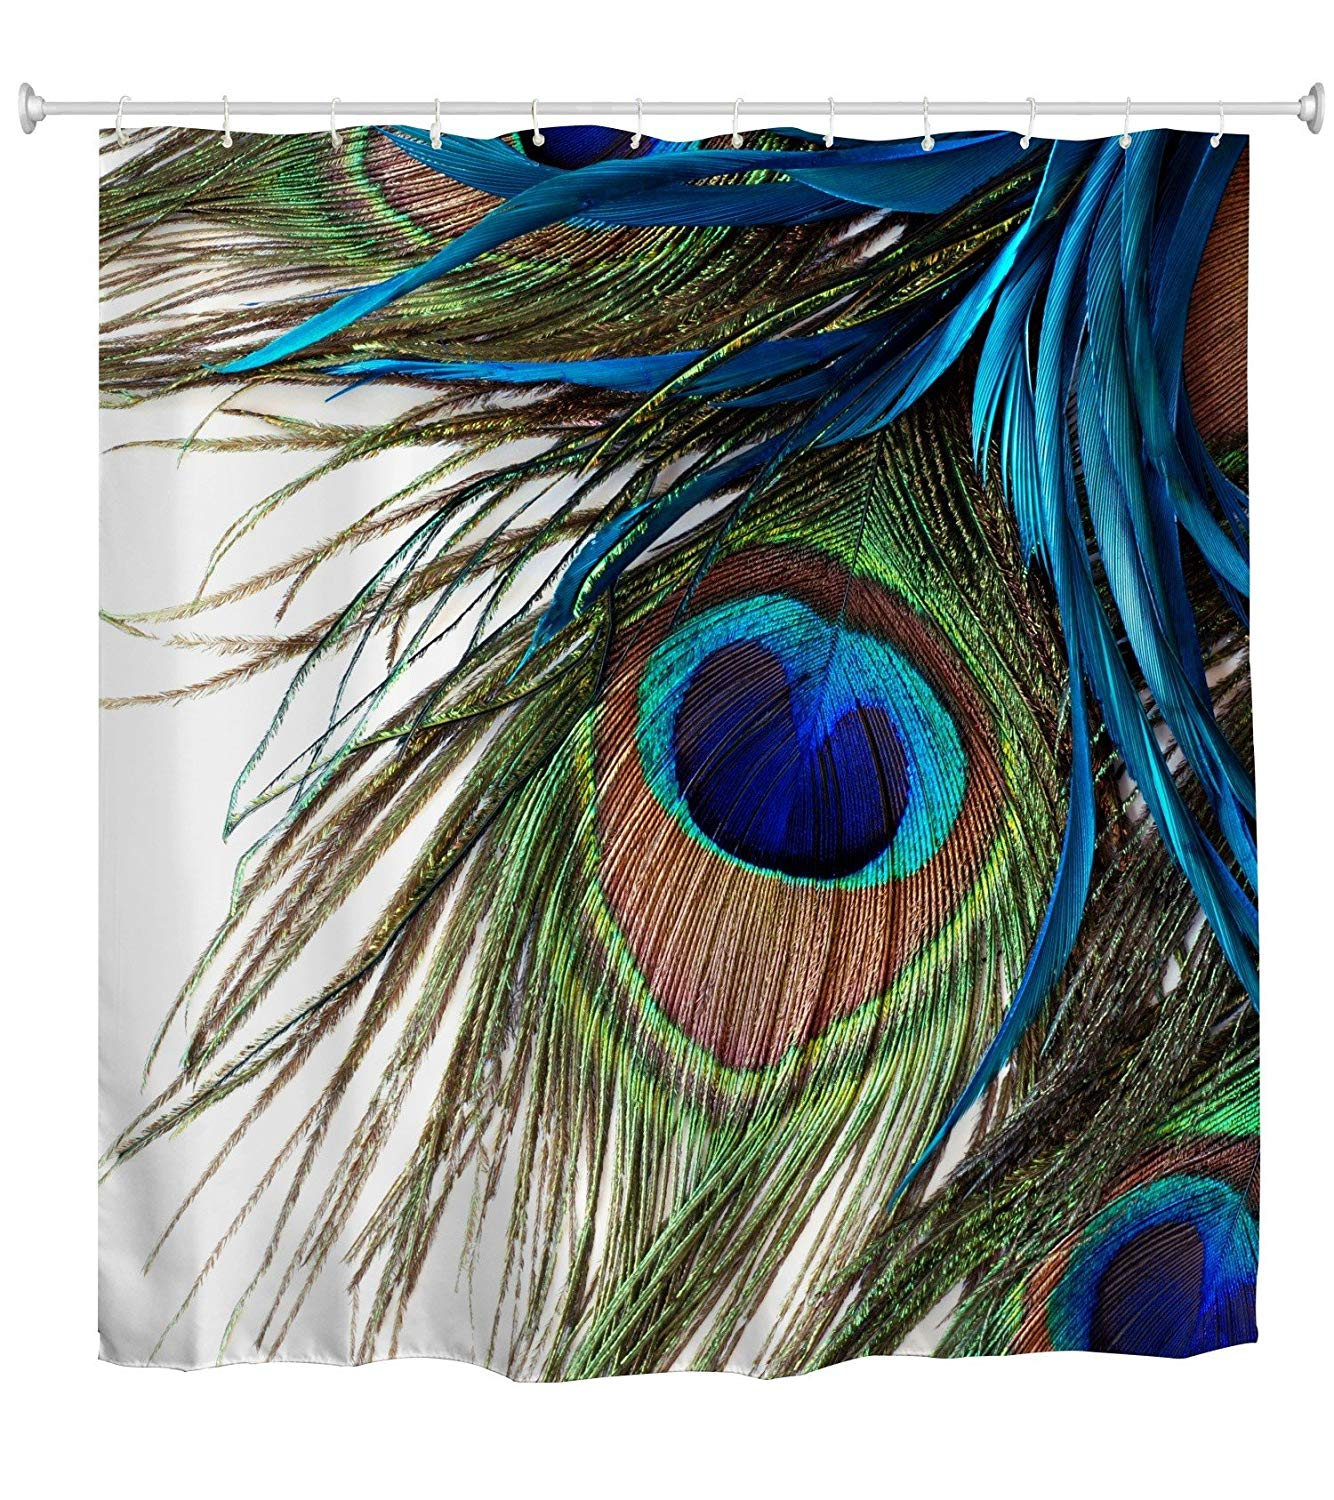 Us 14 27 26 Off Peacock Shower Curtain Peacock Feather Eye Waterproof Fabric Bath Shower Curtains Colorful In Shower Curtains From Home Garden On